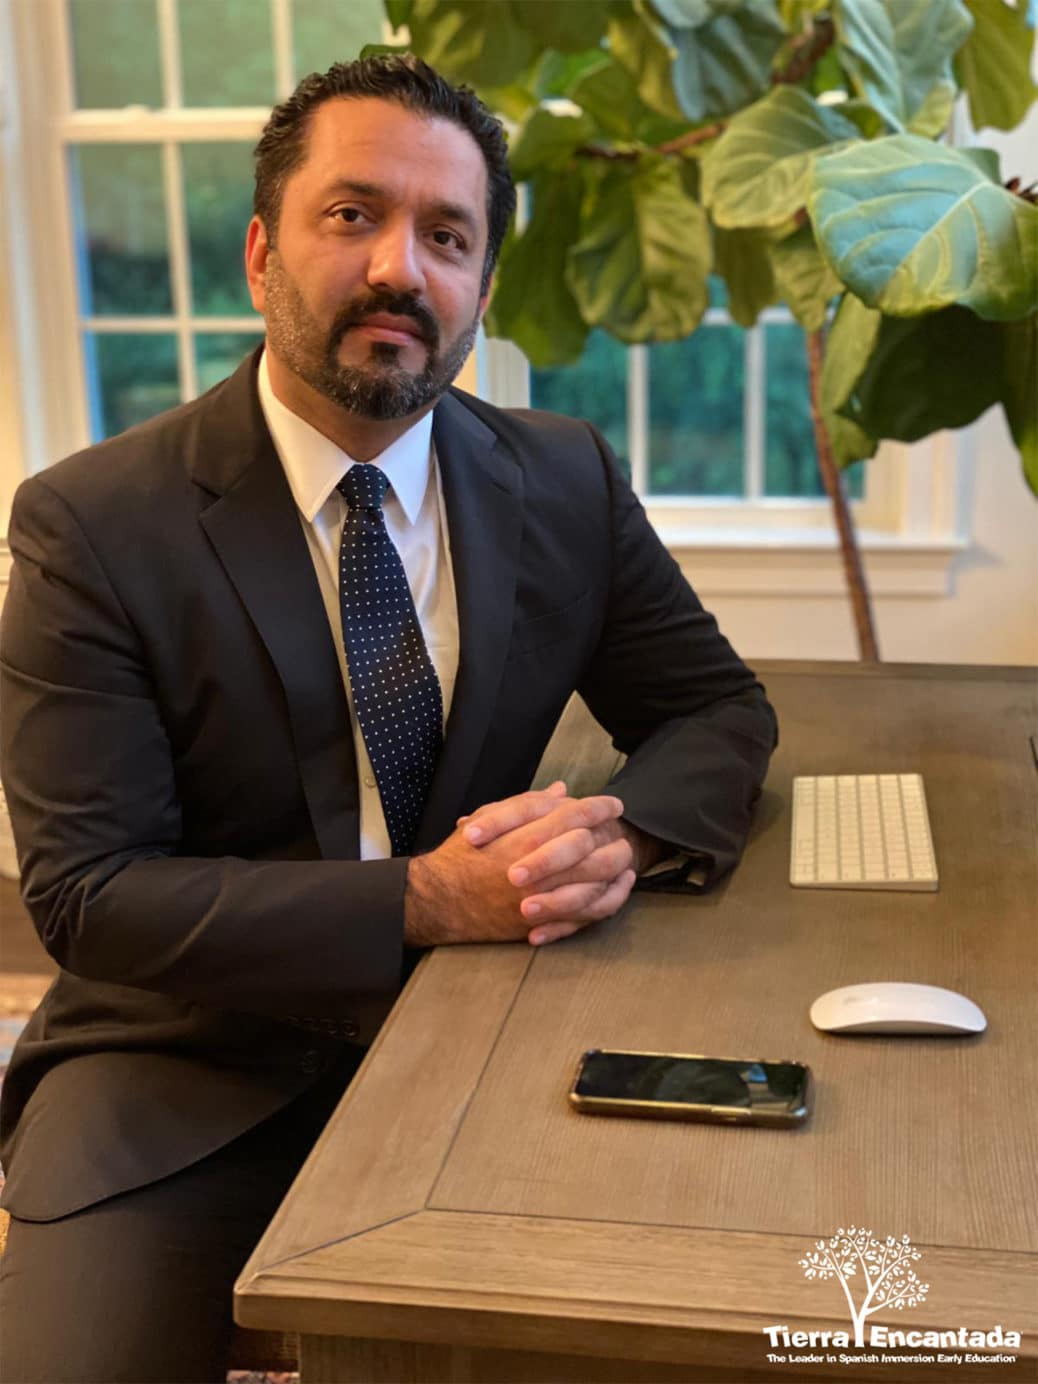 Mustafa Durrani seated at home office table wearing a suit and tie and looking confident